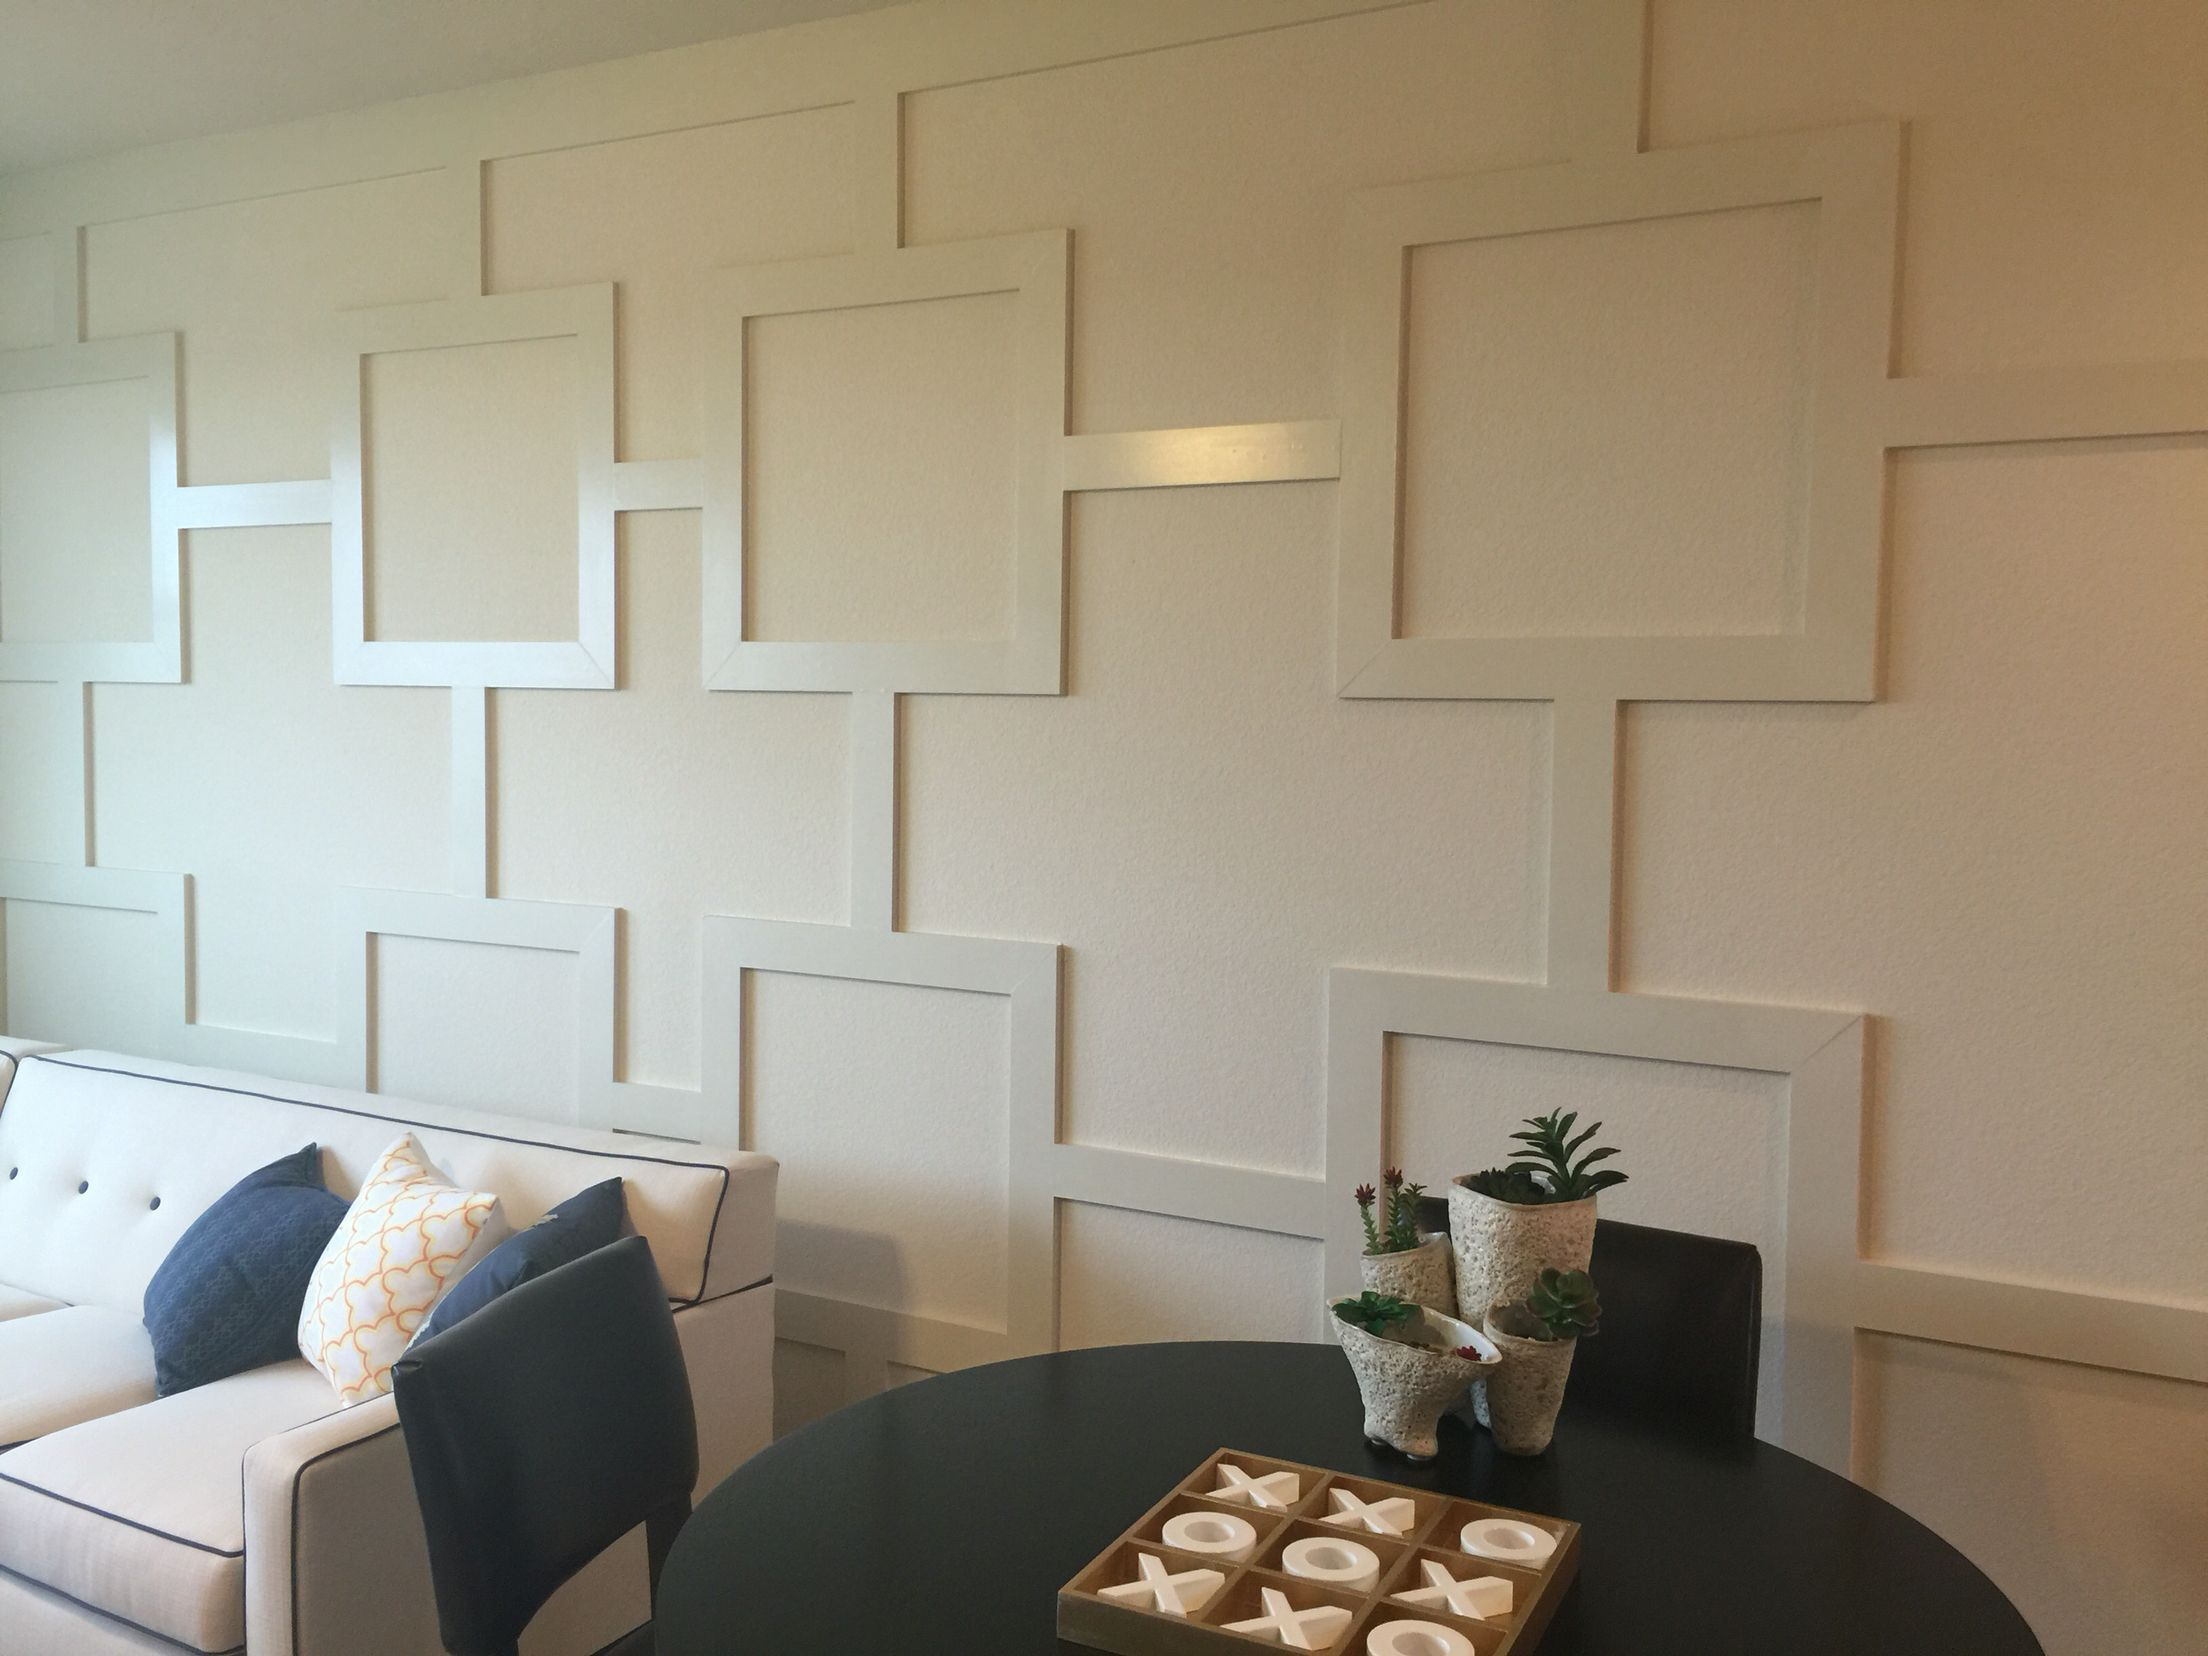 Wood Trim Design Accent Wall Simply Use 1x4 S To Add This Look To